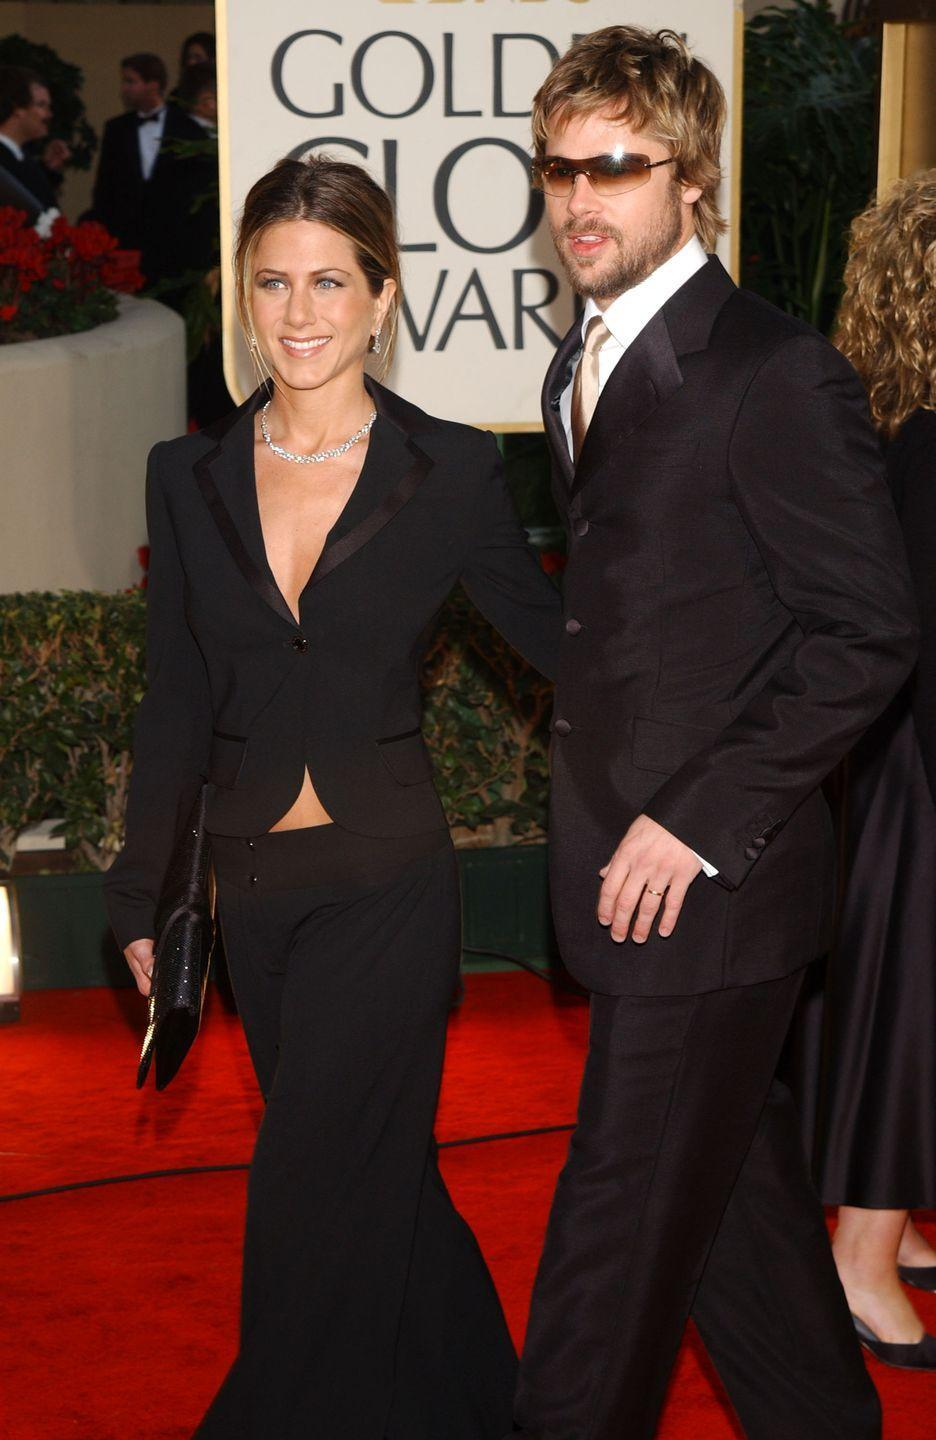 <p>Pitt and Aniston attend the Golden Globes, where both she and <em>Friends</em> are nominated. Neither wins, but they matched outfits, so there's that. </p>